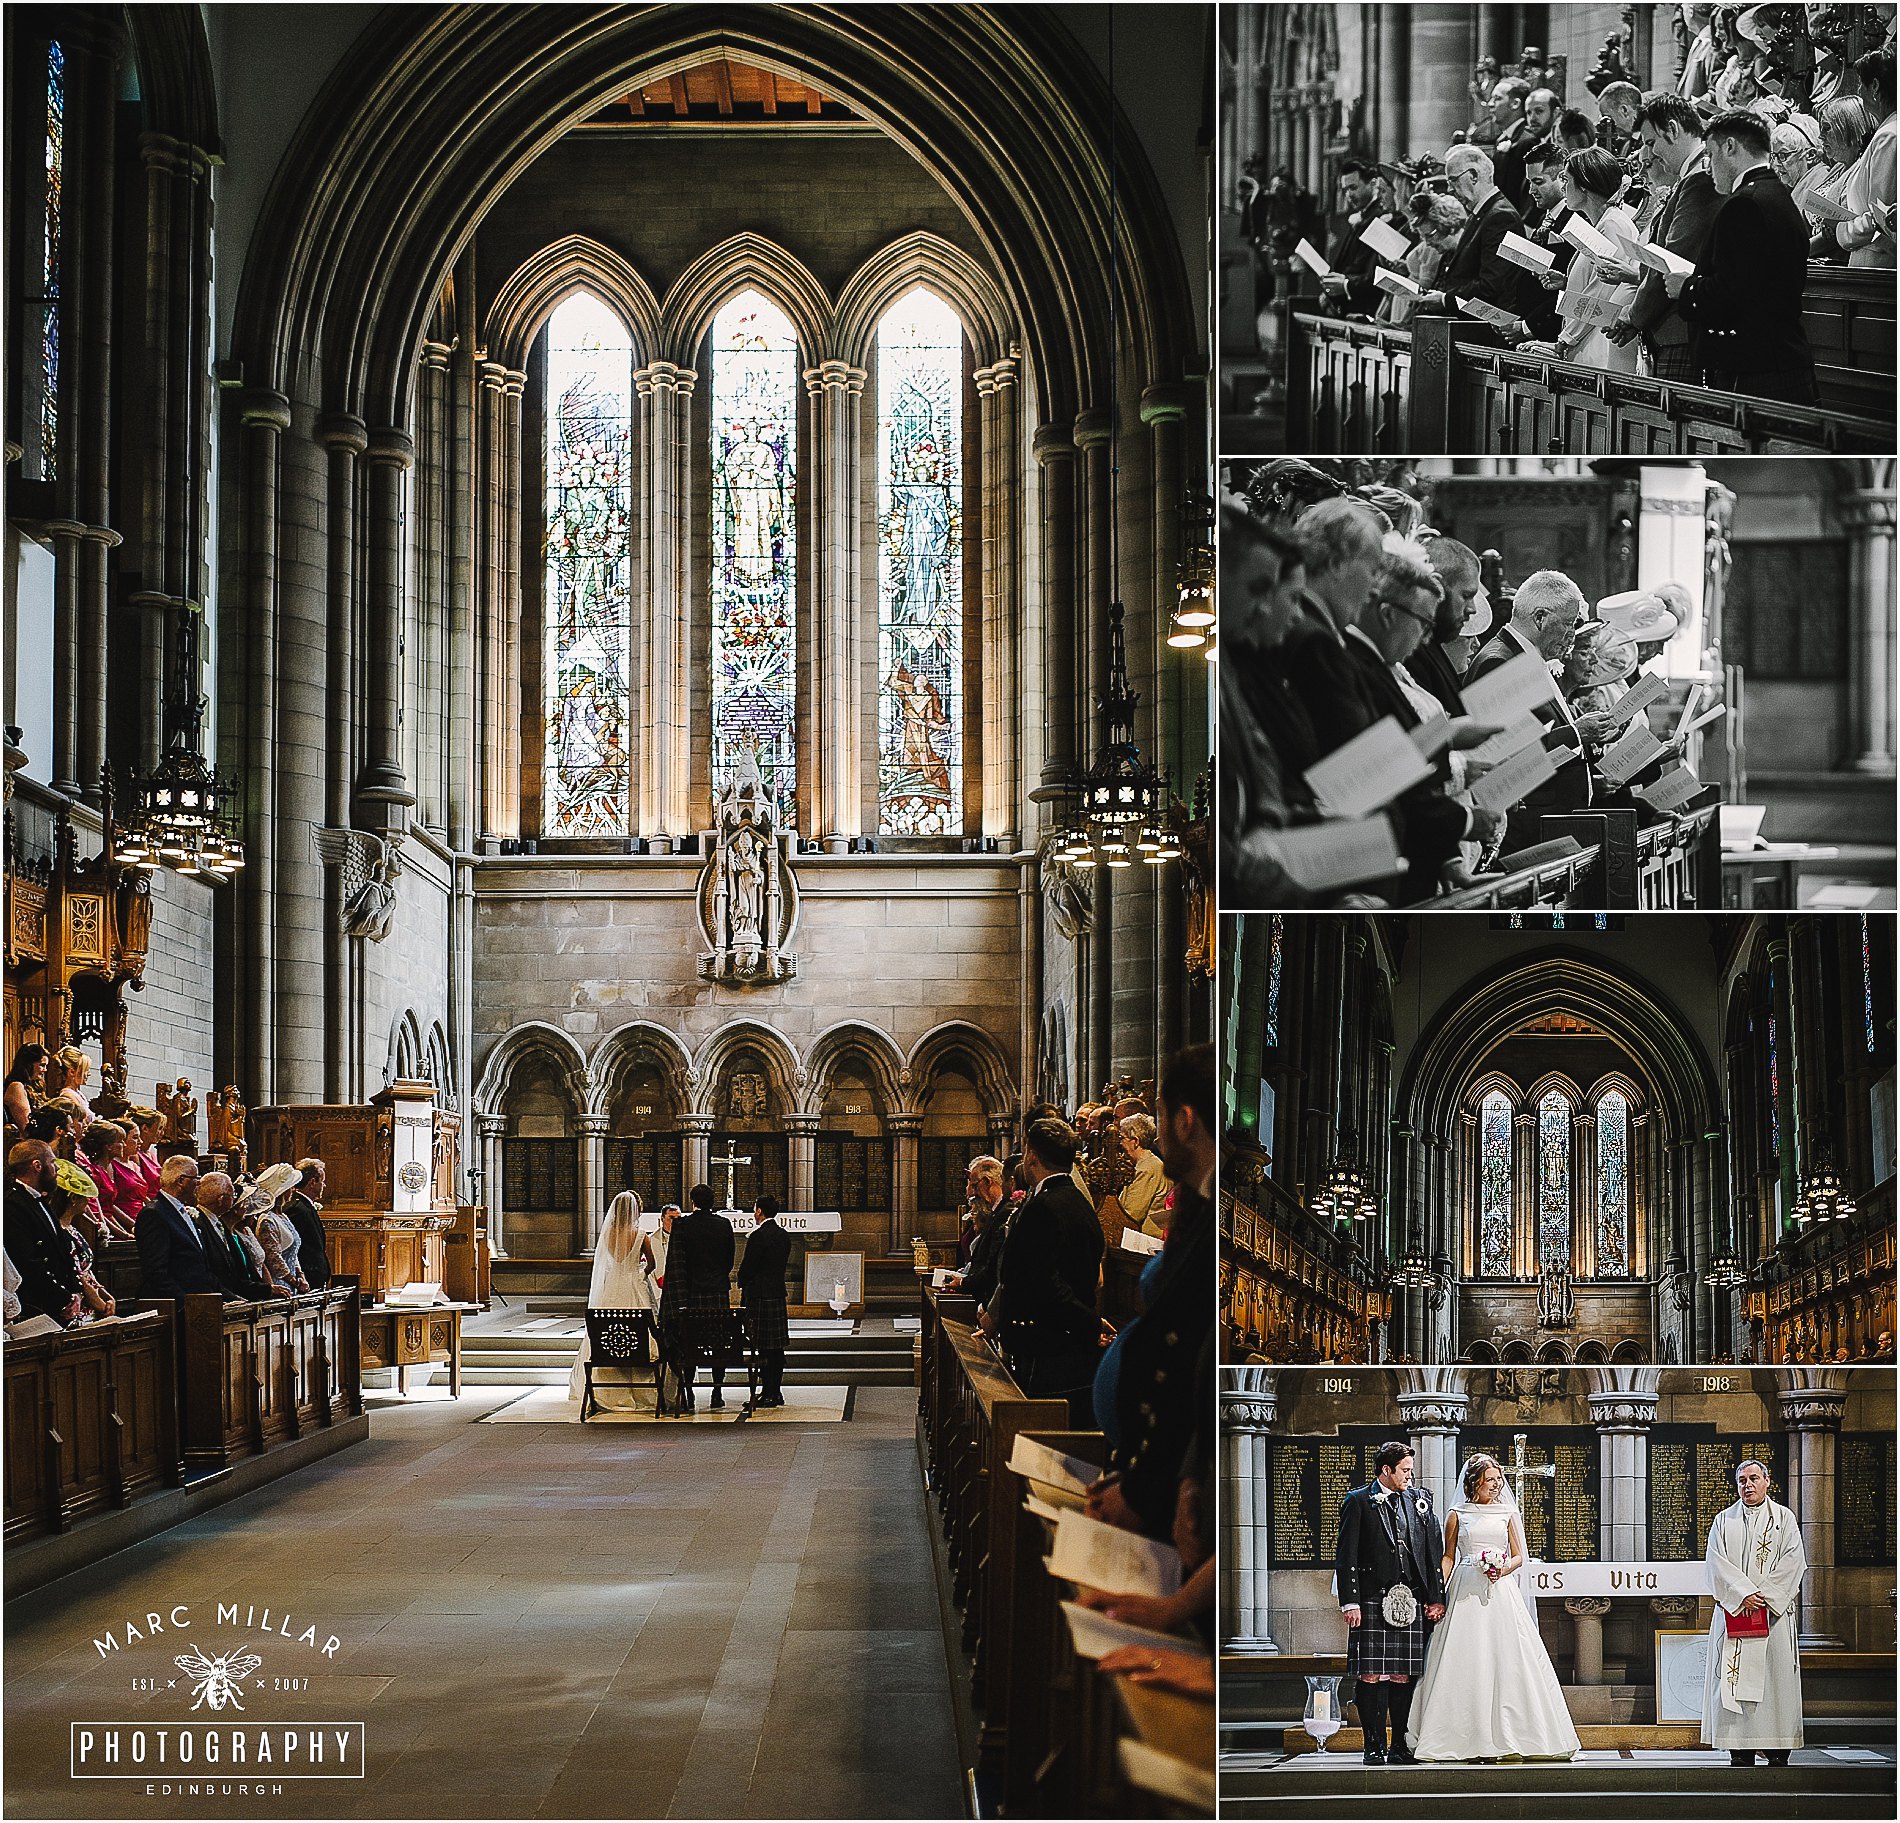 The Balmoral Wedding Photographs159.jpg